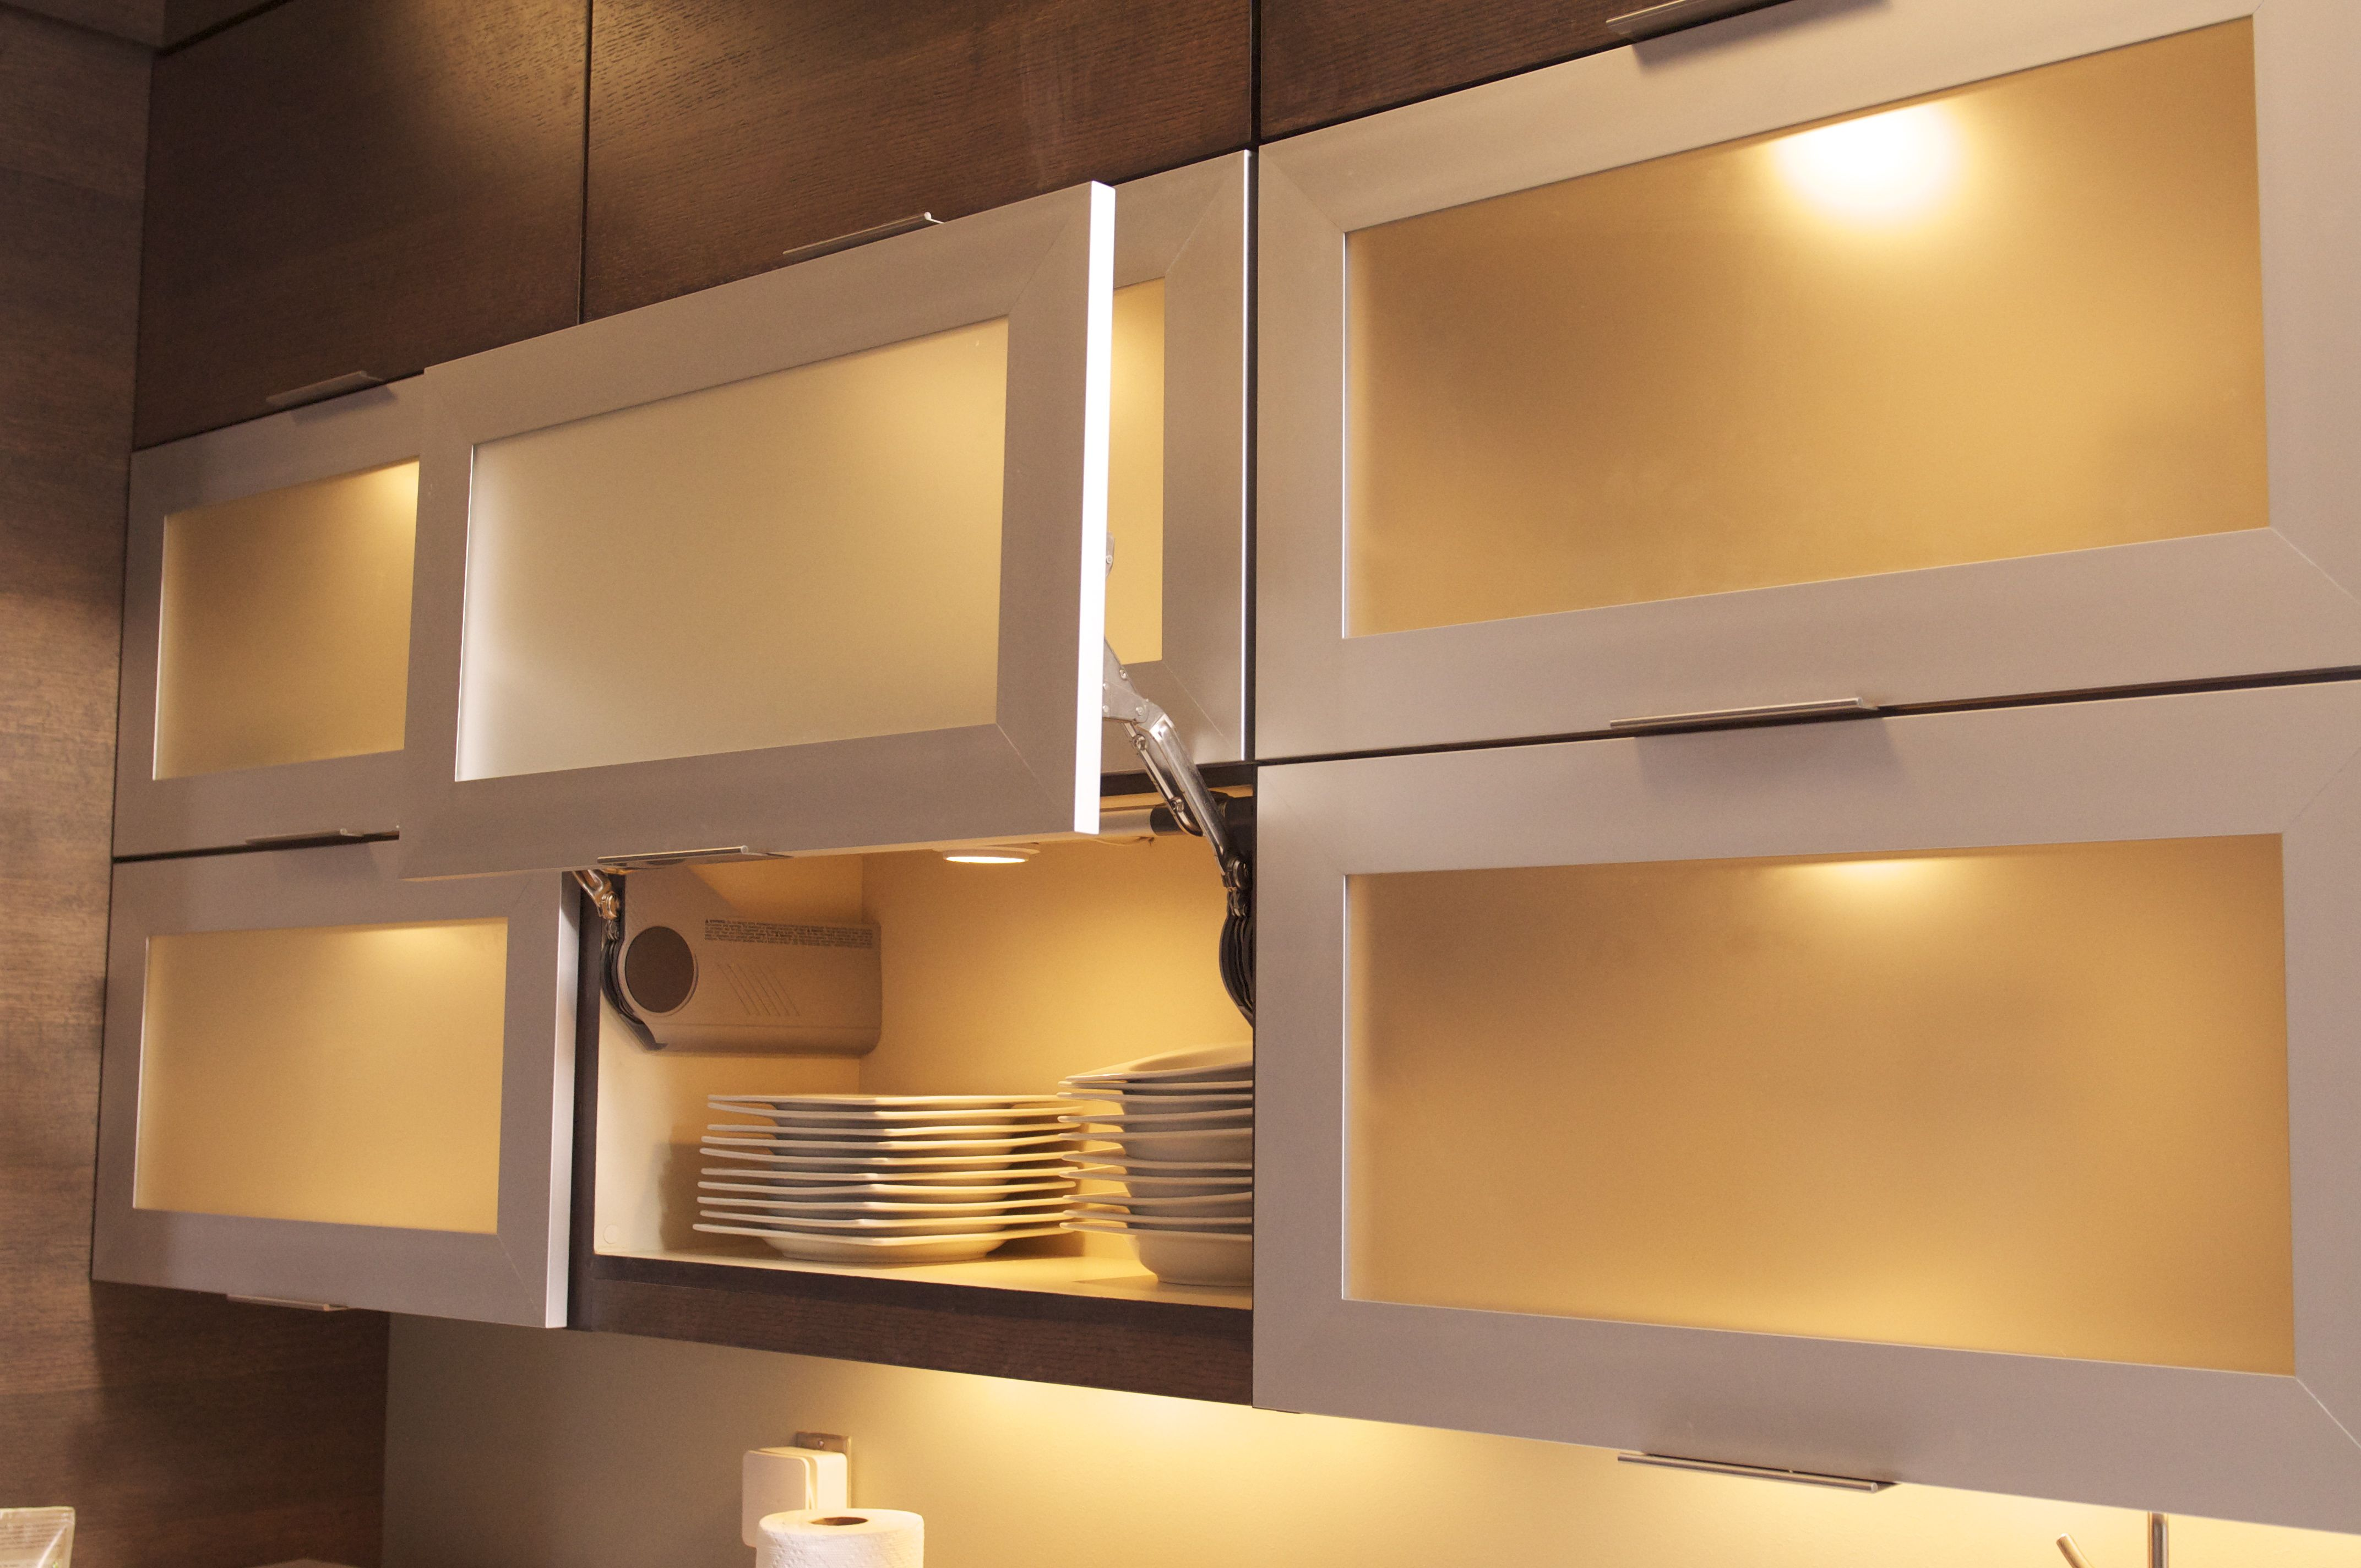 Aluminum Cabinet Doors With Blum Aventos Hl Hinges Which